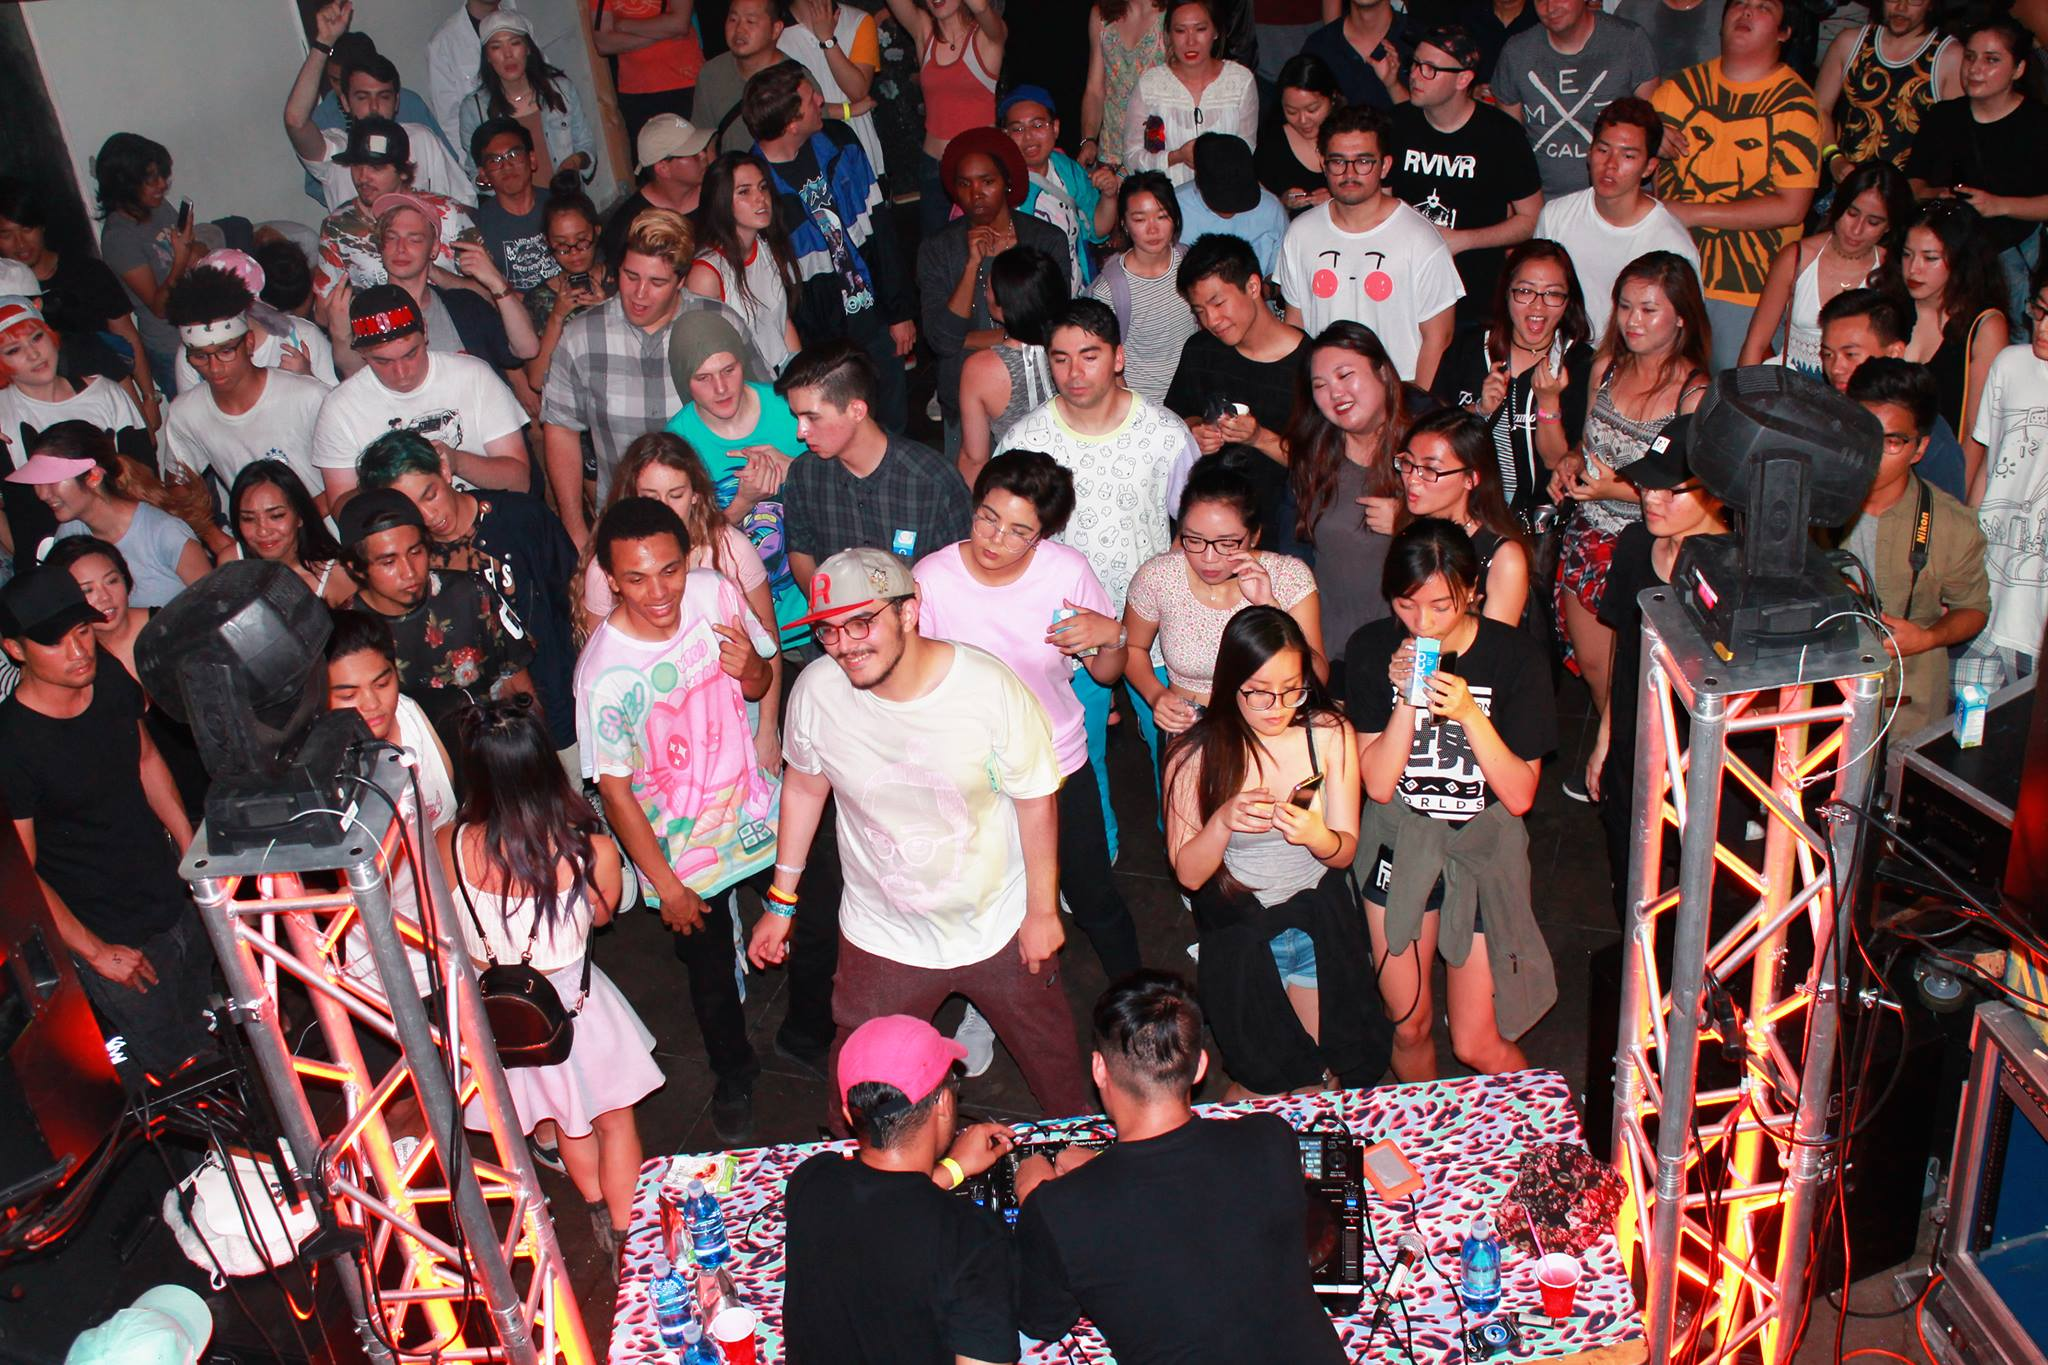 DUCKY // DJ Mit Limeade // tdoyle // OmniBoi // Bohkeh // Asian American Football - Click Here for more..